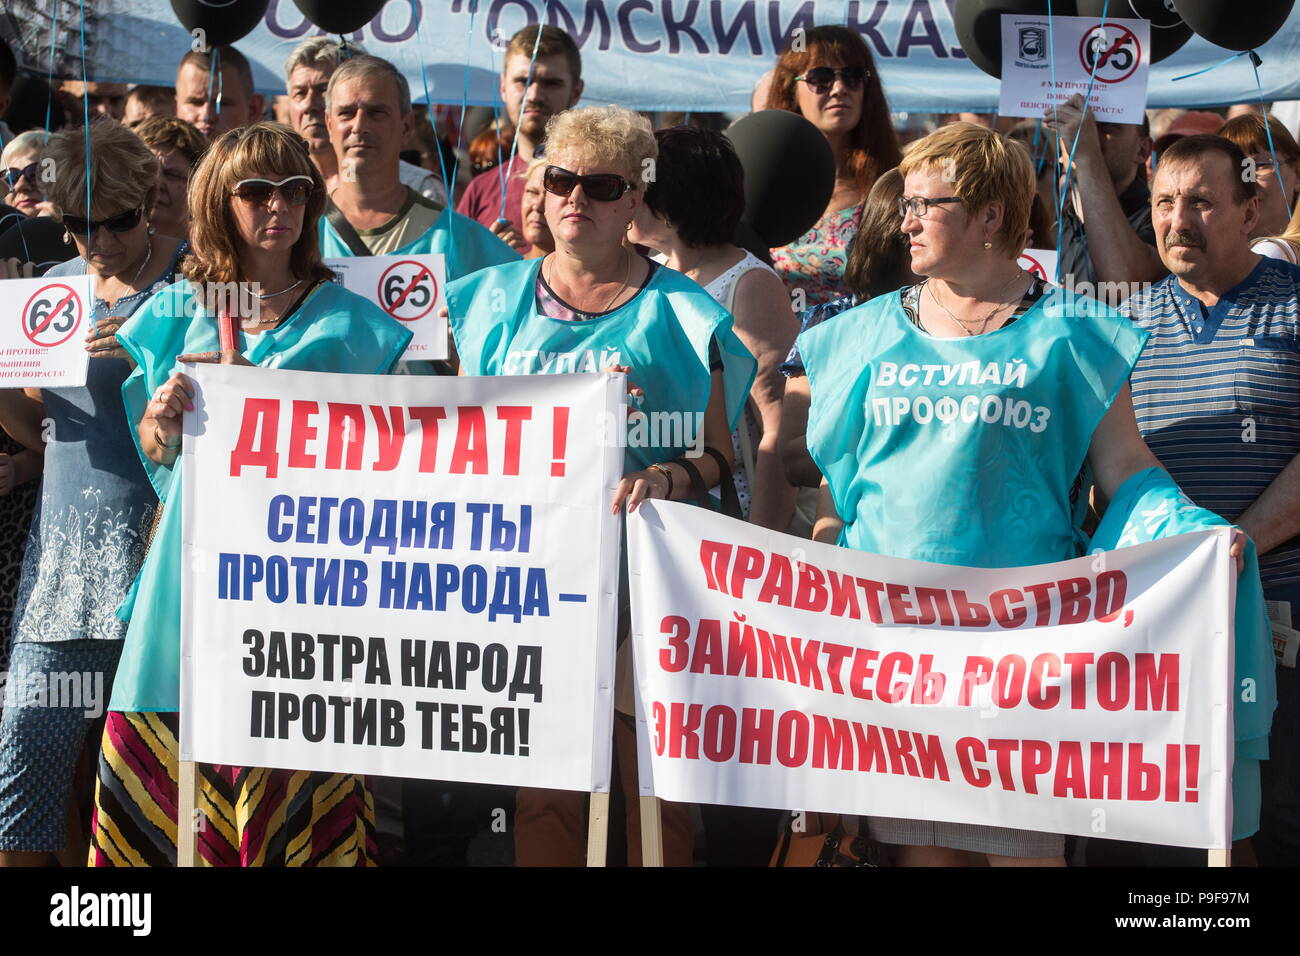 Omsk, Russia. 18th July, 2018. OMSK, RUSSIA - JULY 18, 2018: People take part in an Omsk rally against a Russian government proposal to raise the retirement age from 60 to 65 for men, and from 55 to 63 for women withing the next two decades. Dmitry Feoktistov/TASS Credit: ITAR-TASS News Agency/Alamy Live News - Stock Image